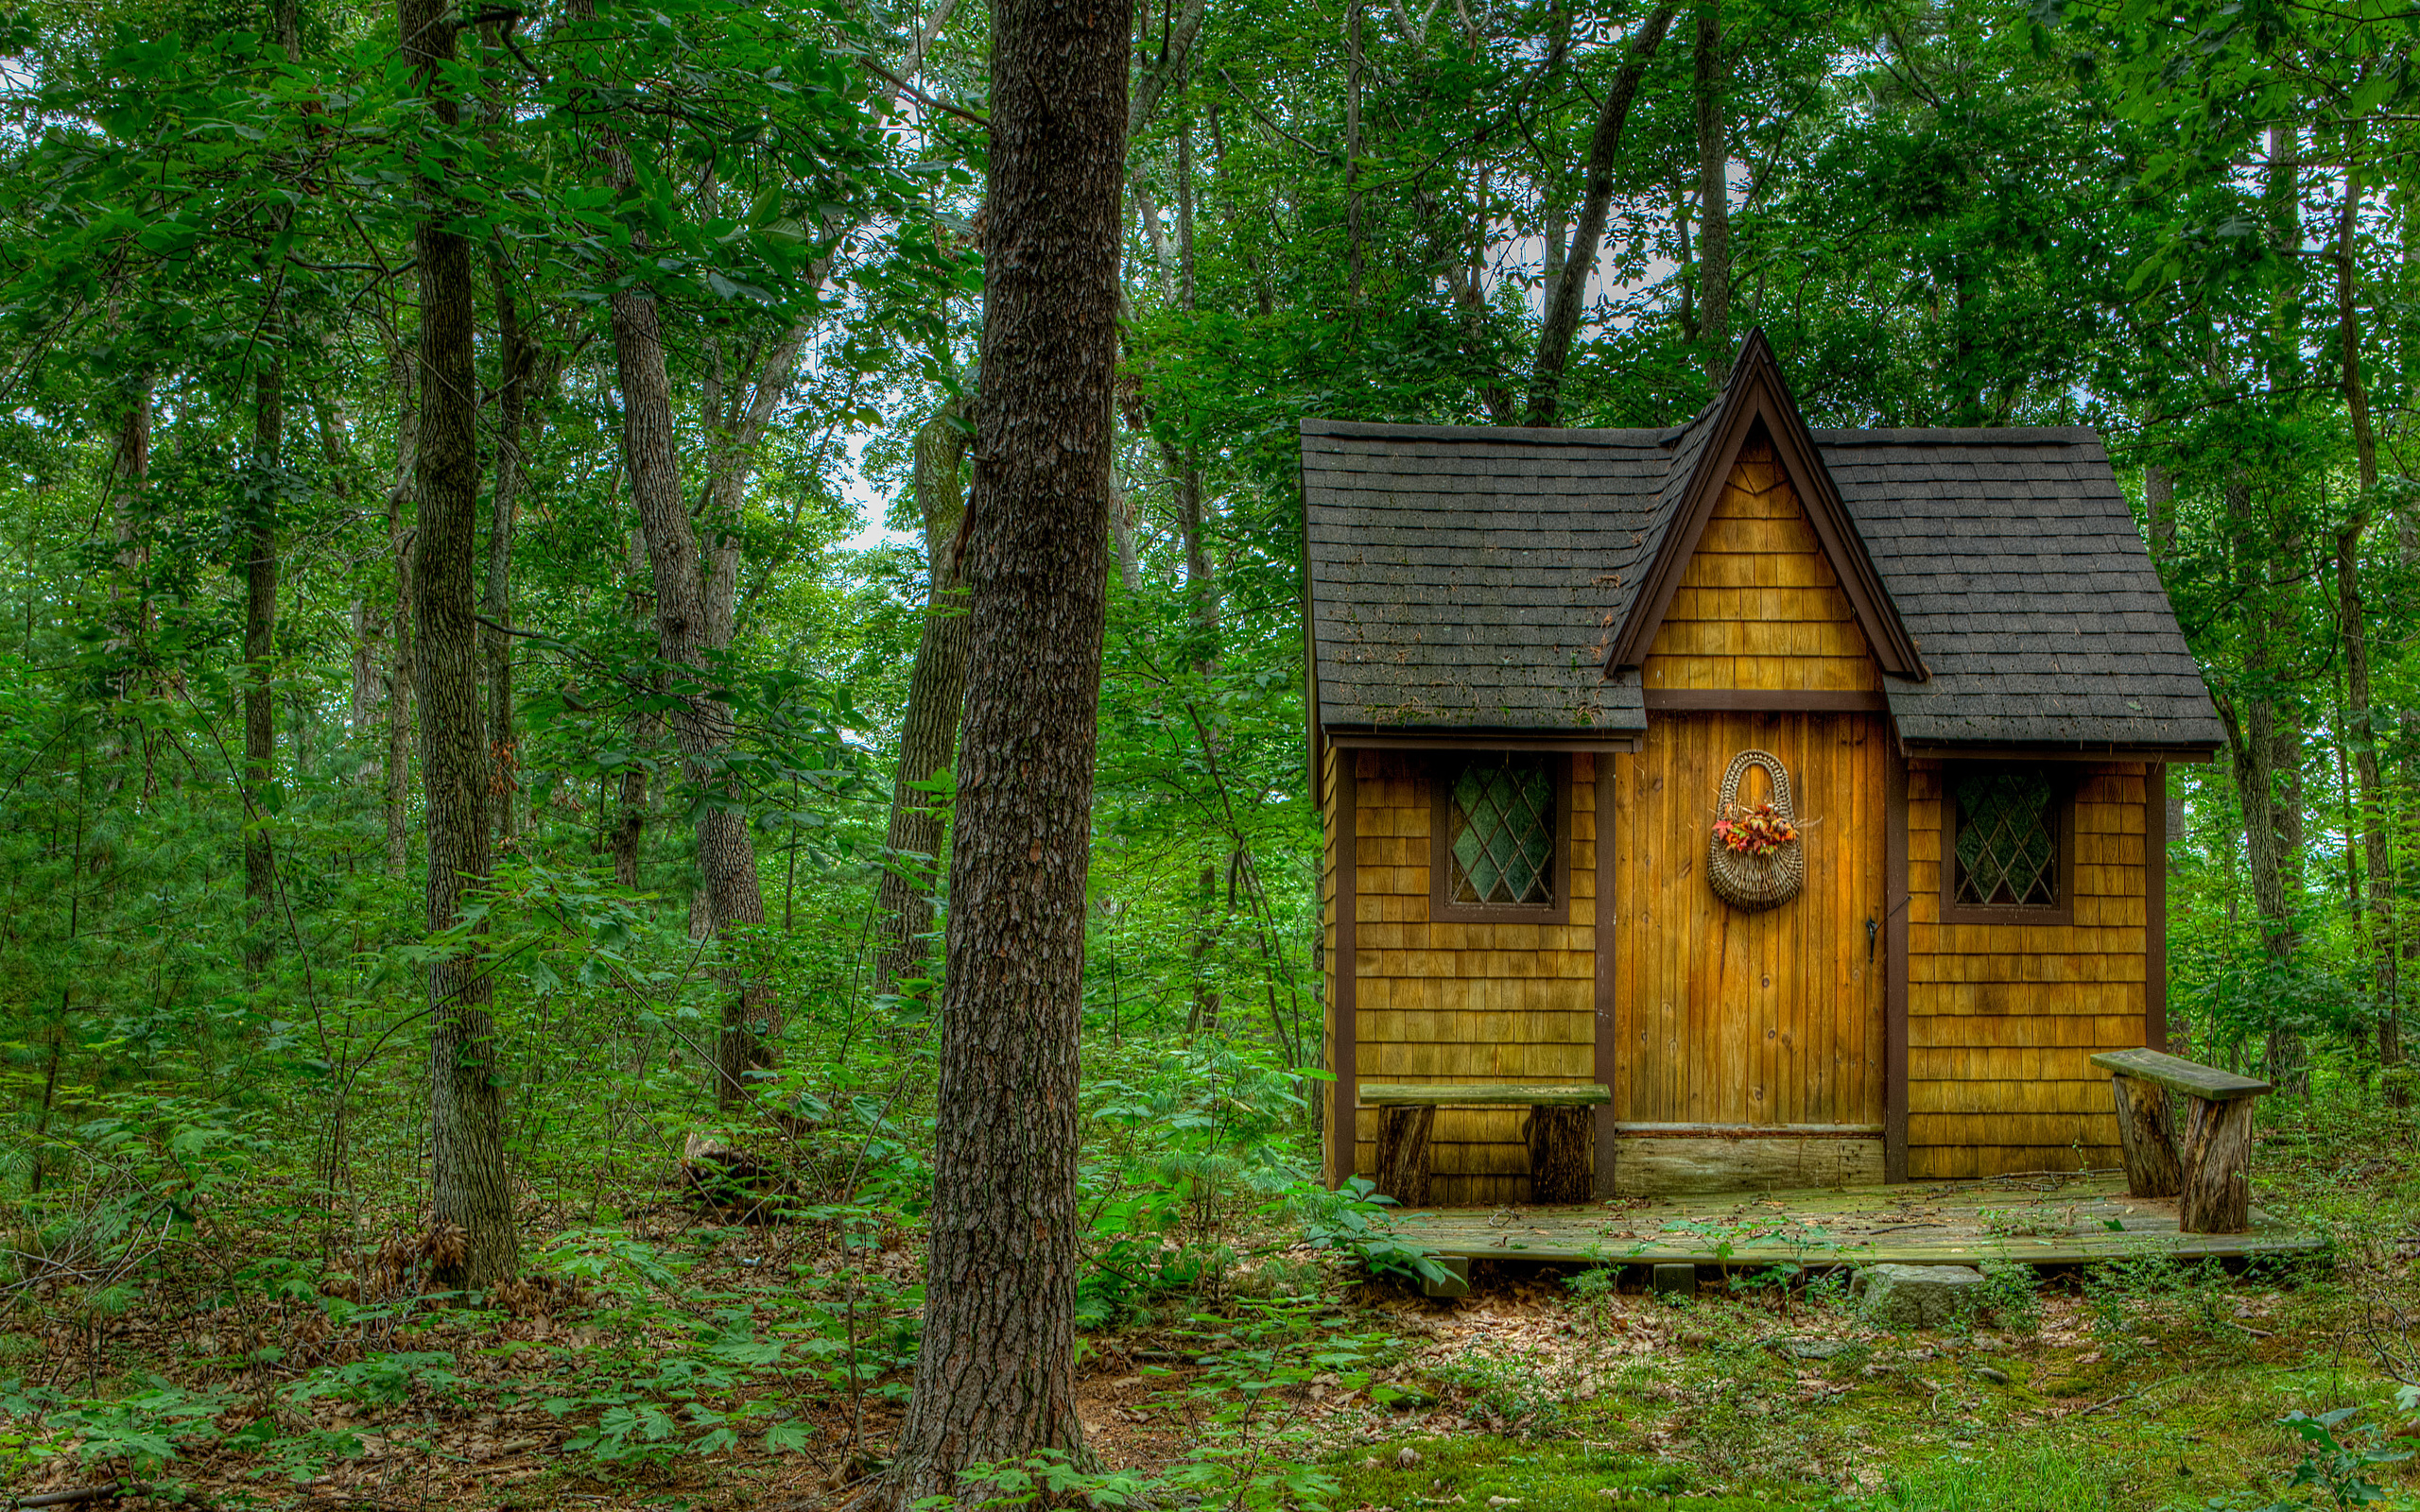 Cabin Home Plans Forest House Trees Nature Landscape Wallpaper 2560x1600